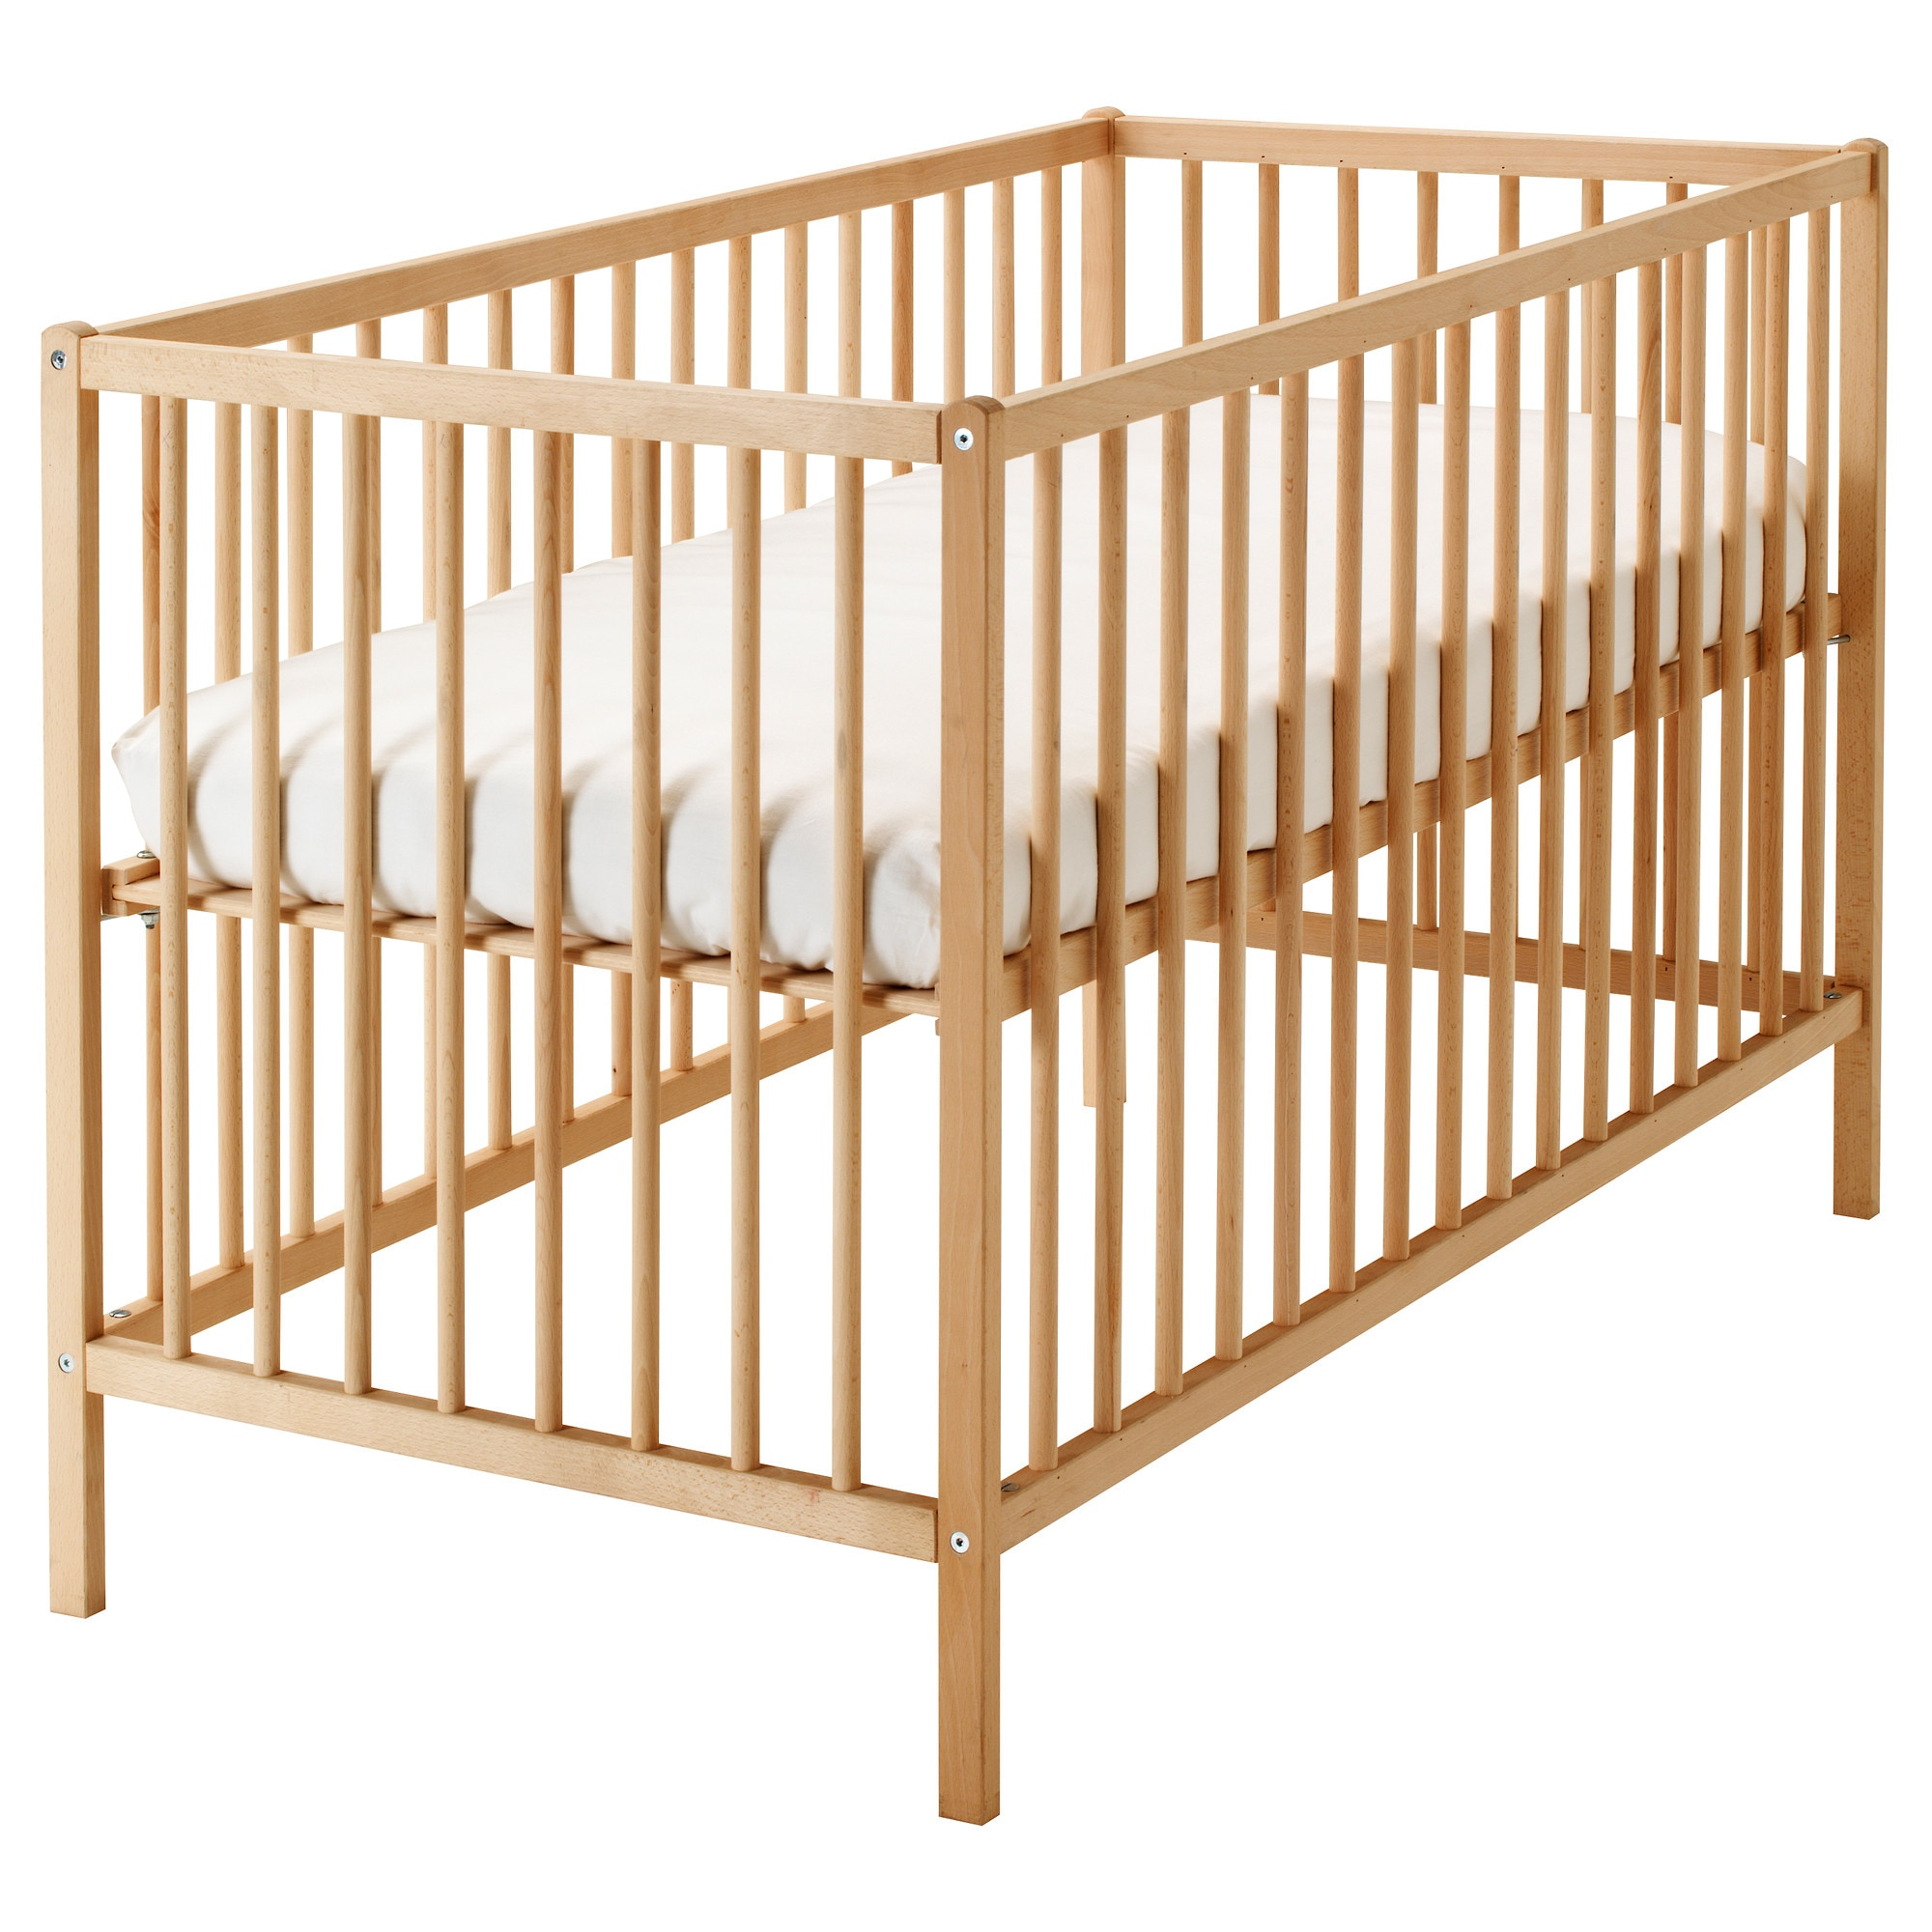 Wooden crib for babies - Wooden Crib For Babies 20